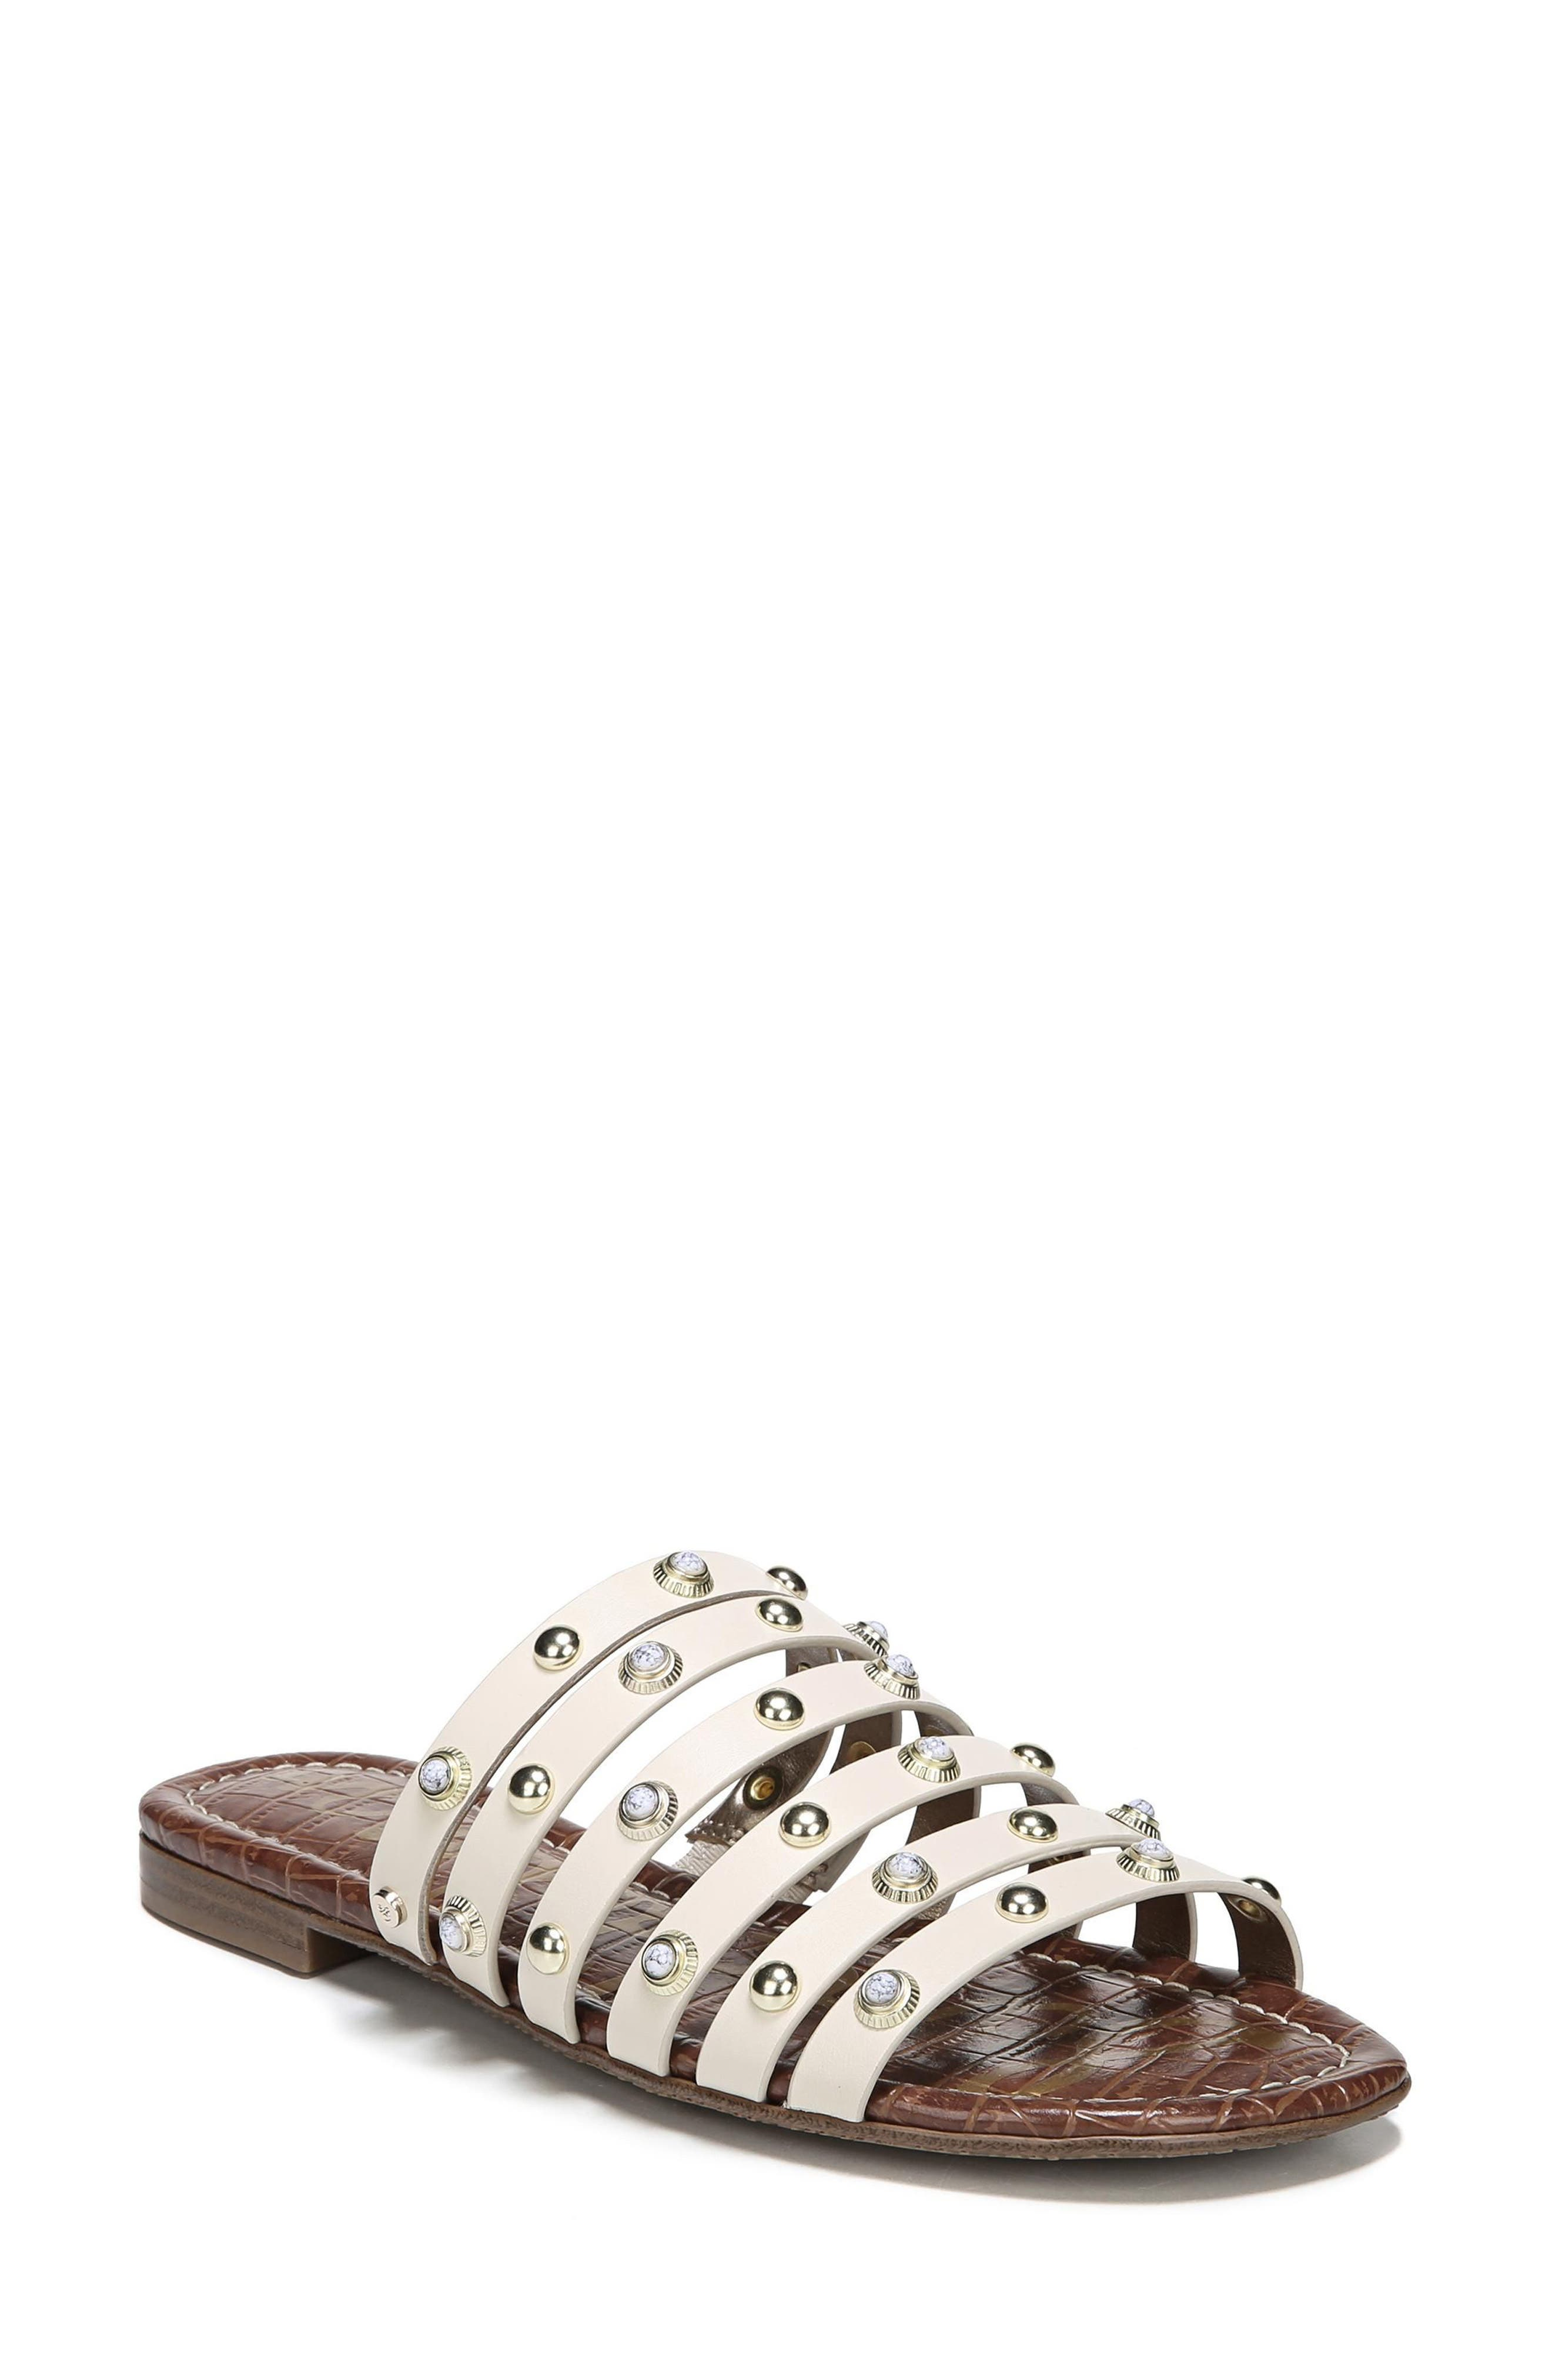 Brea Studded Slide Sandal,                             Main thumbnail 2, color,